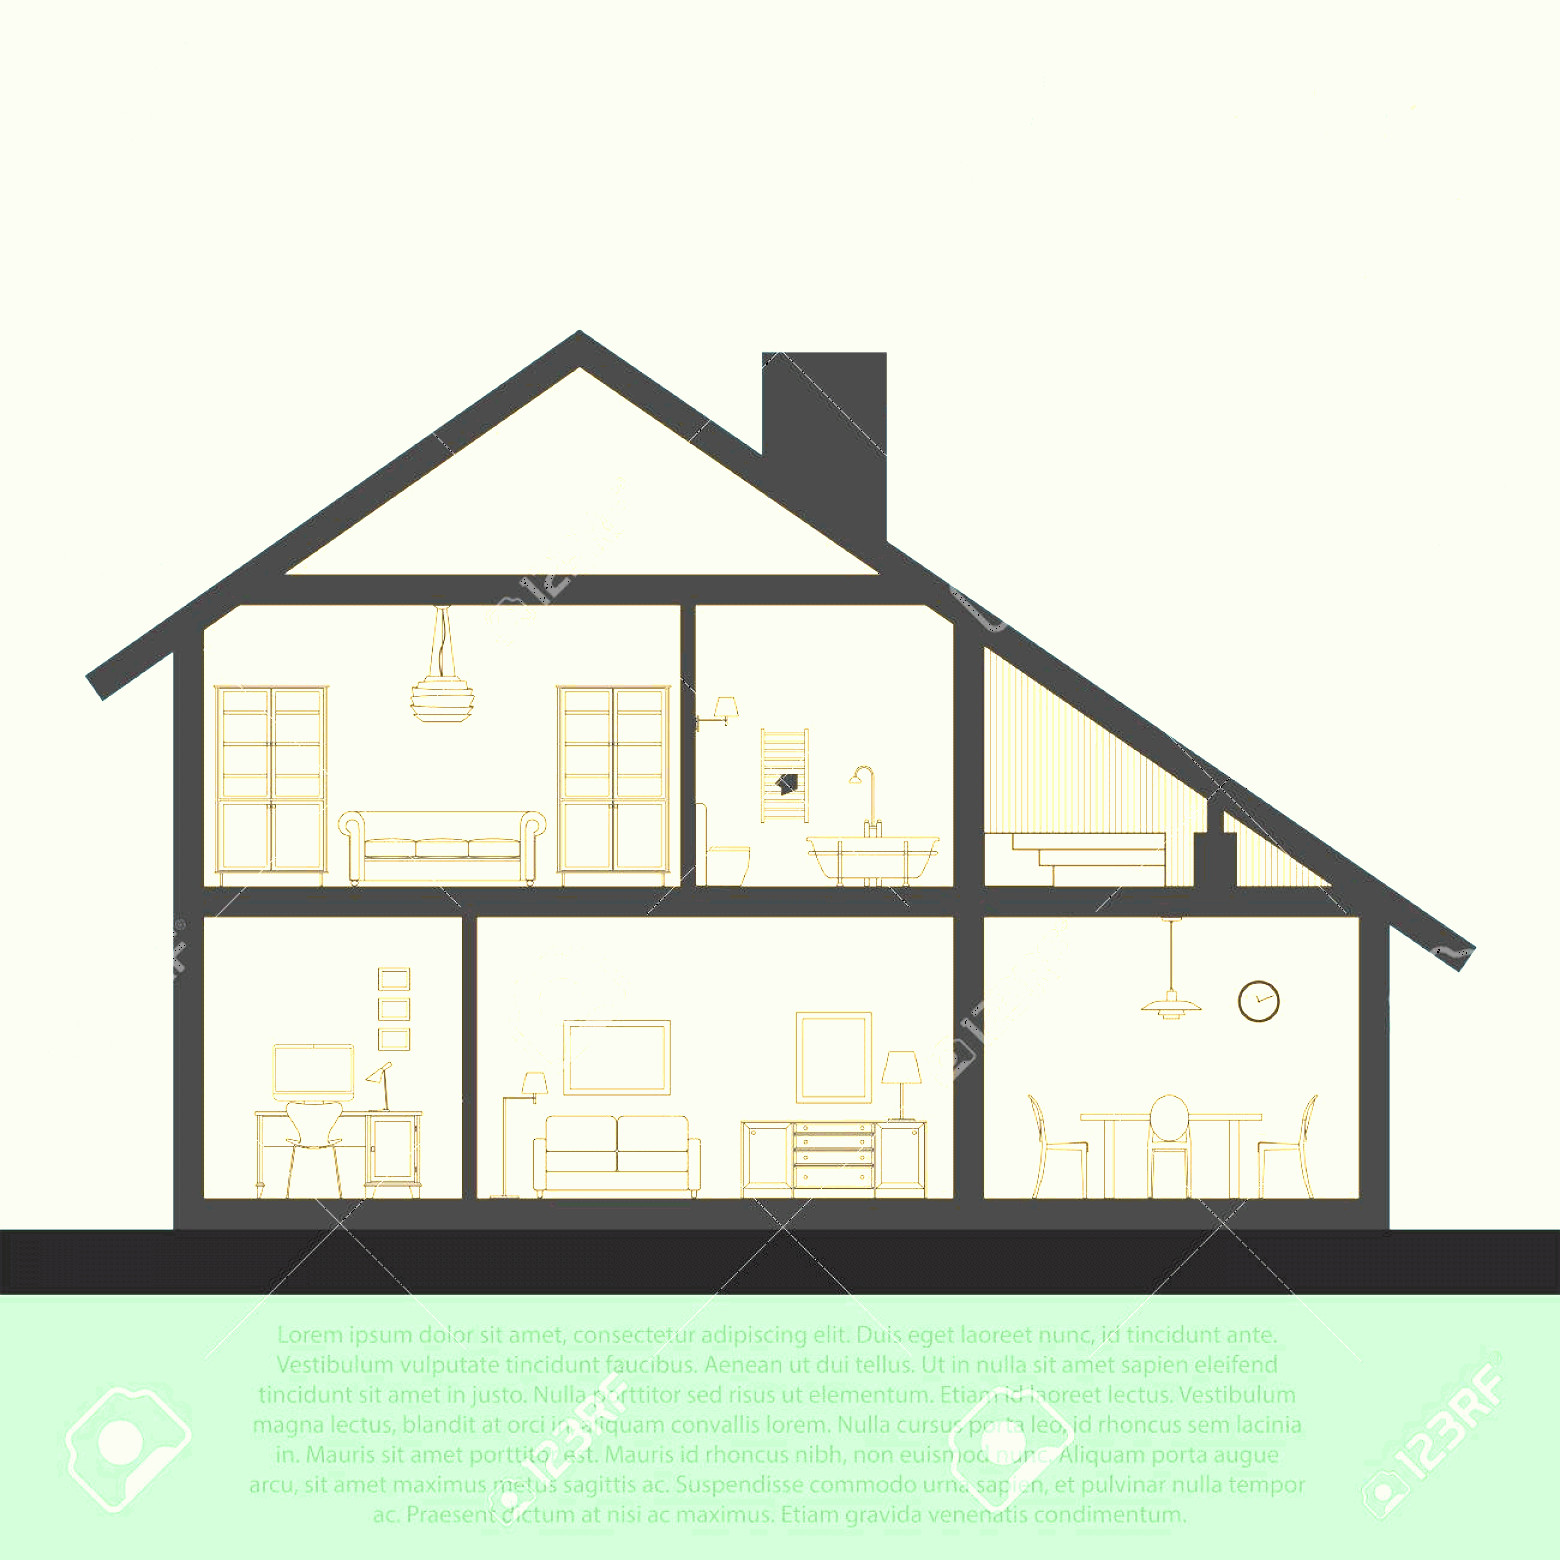 Flat Vector House: Photostock Vector Vector House Interior In Cut Detailed Plan Cross Sectional View Room And Bath Kitchen Flat Style Vec